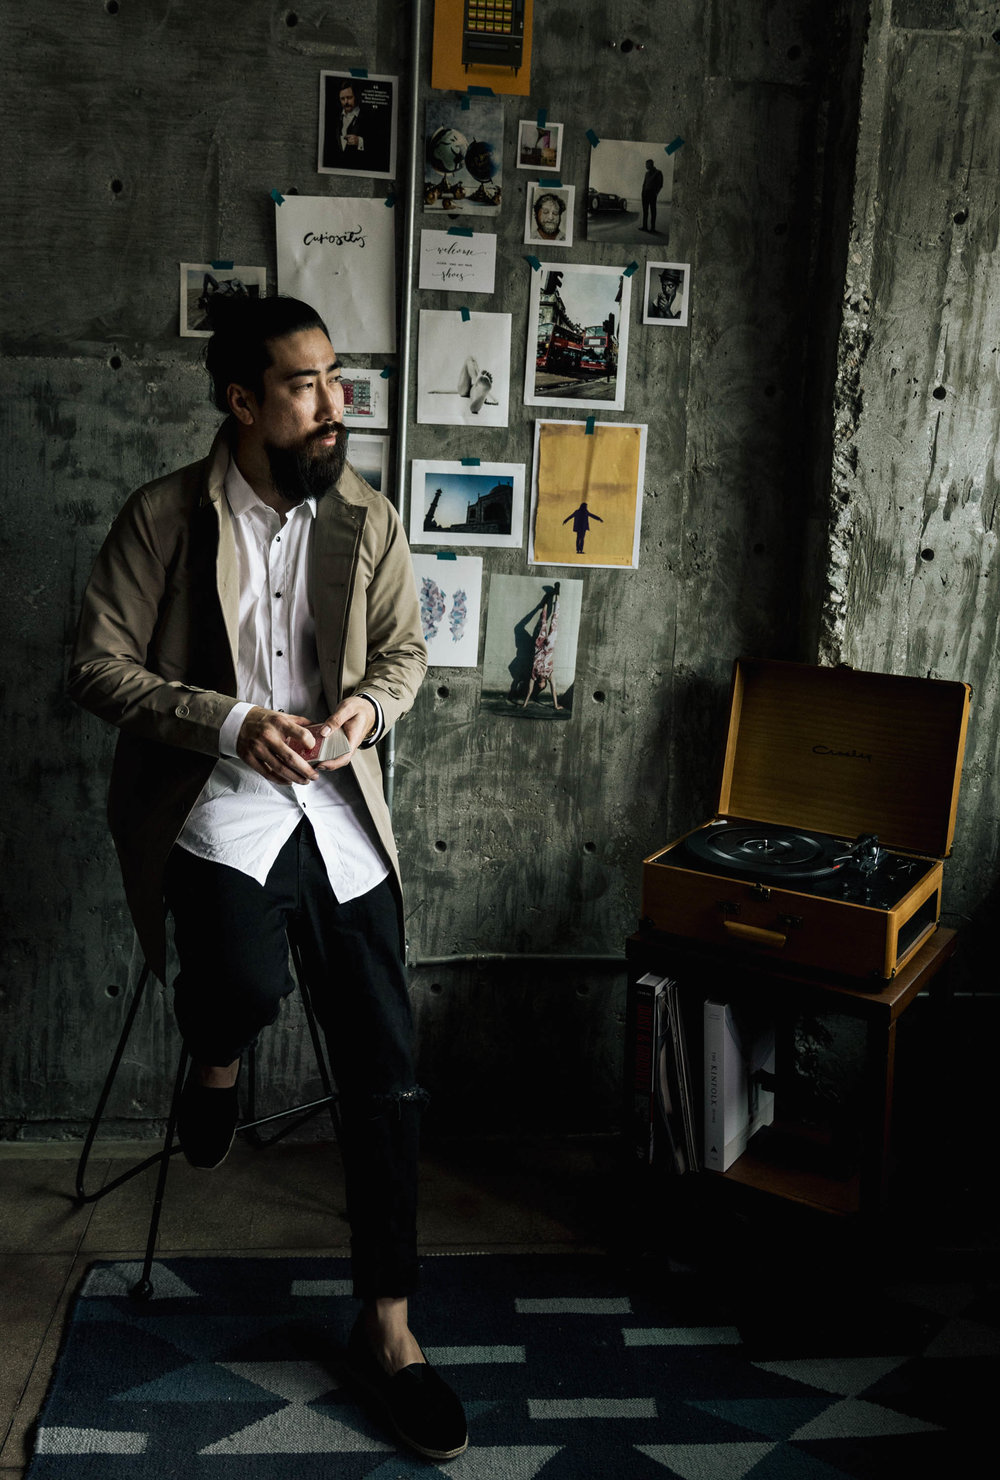 RYAN FENG JUSTFENG OOTDMEN MENS FASHION GQ STYLE ASIAN BEARD DAPPER